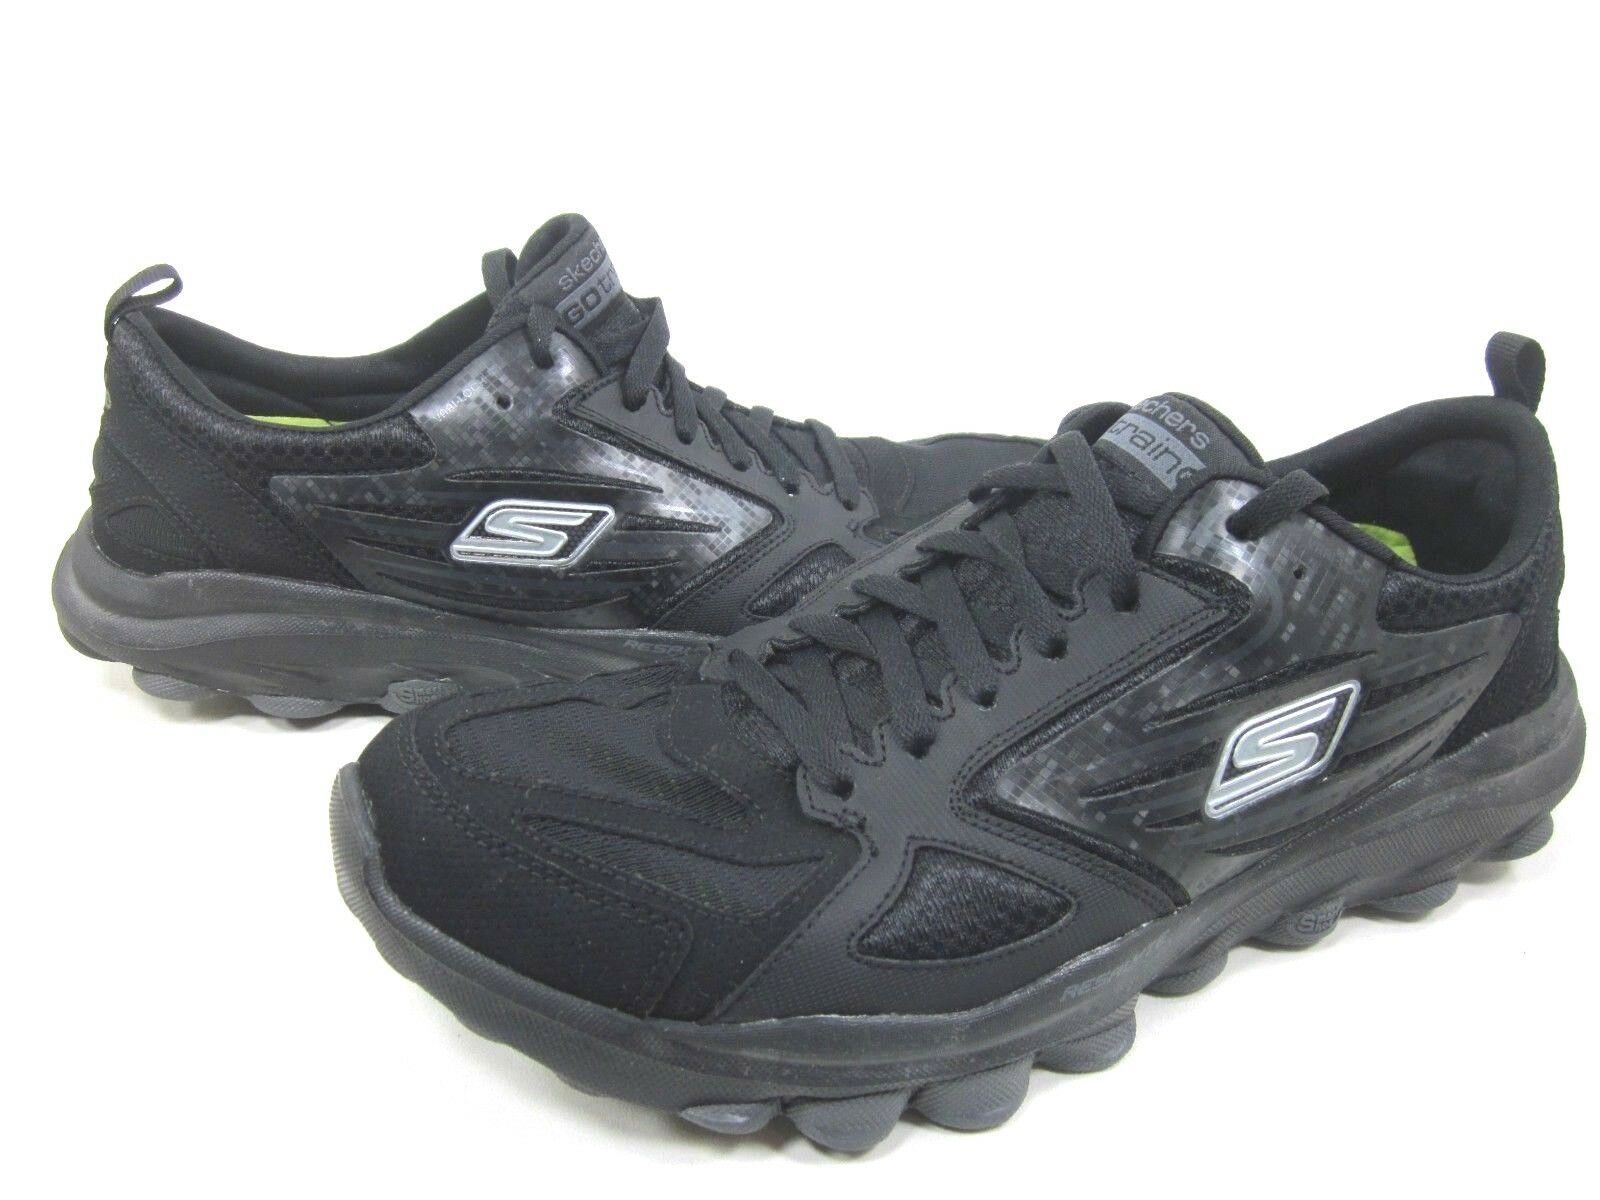 SKECHERS PERFORMANCE MENS GO TRAIN RUNNING SHOES,53503/BBK,BLACK,US SIZE 11 M The latest discount shoes for men and women